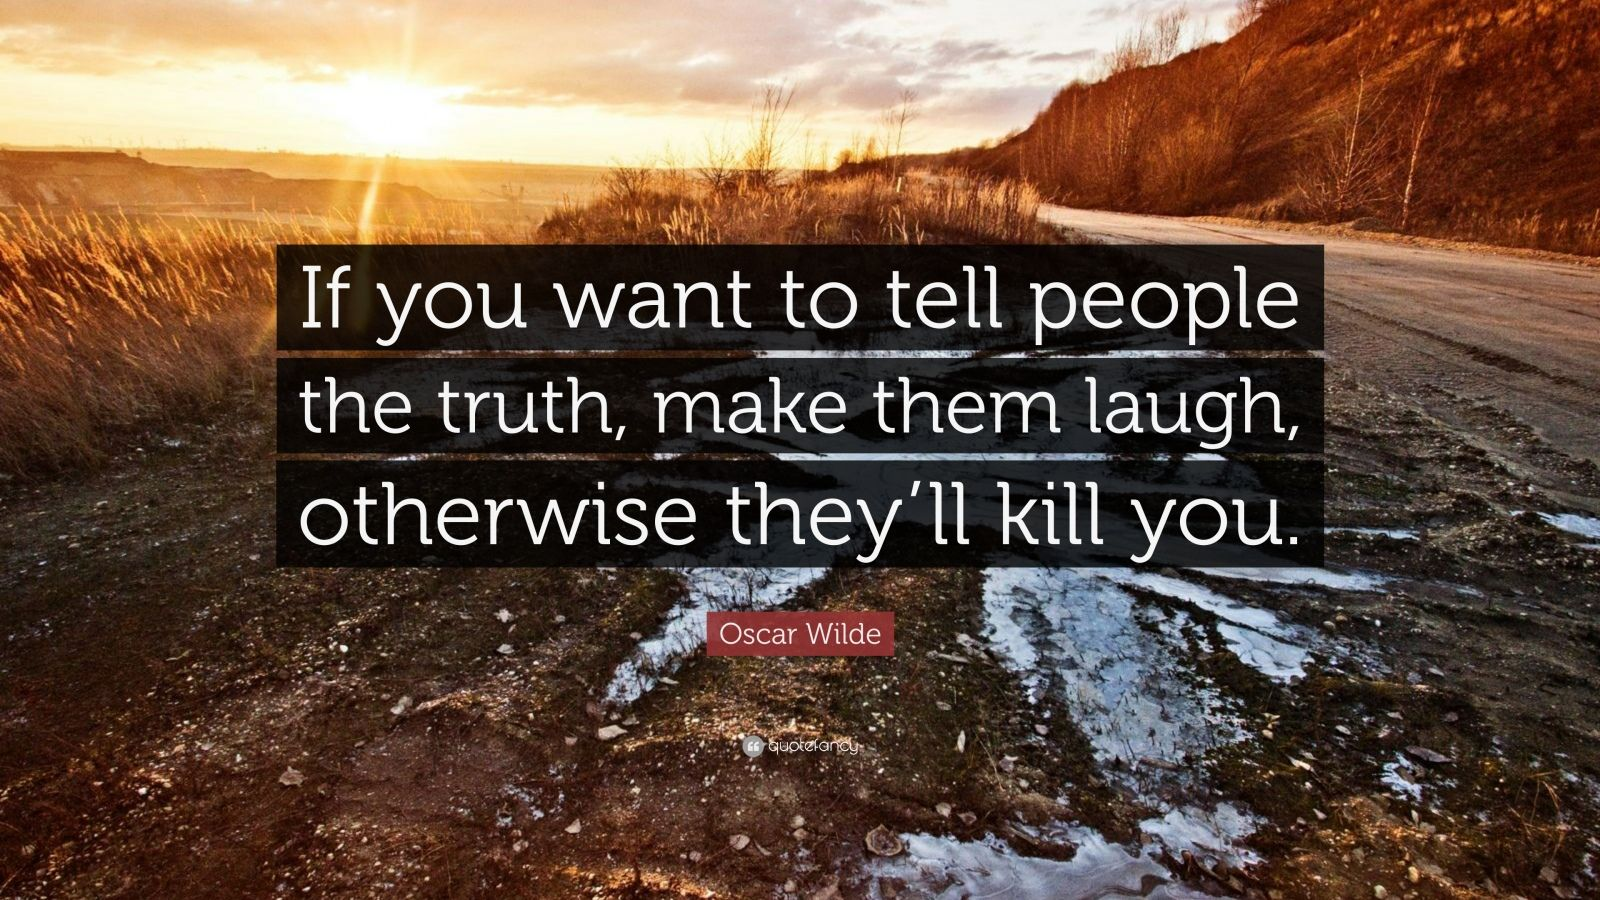 how to make someone believe you are telling the truth